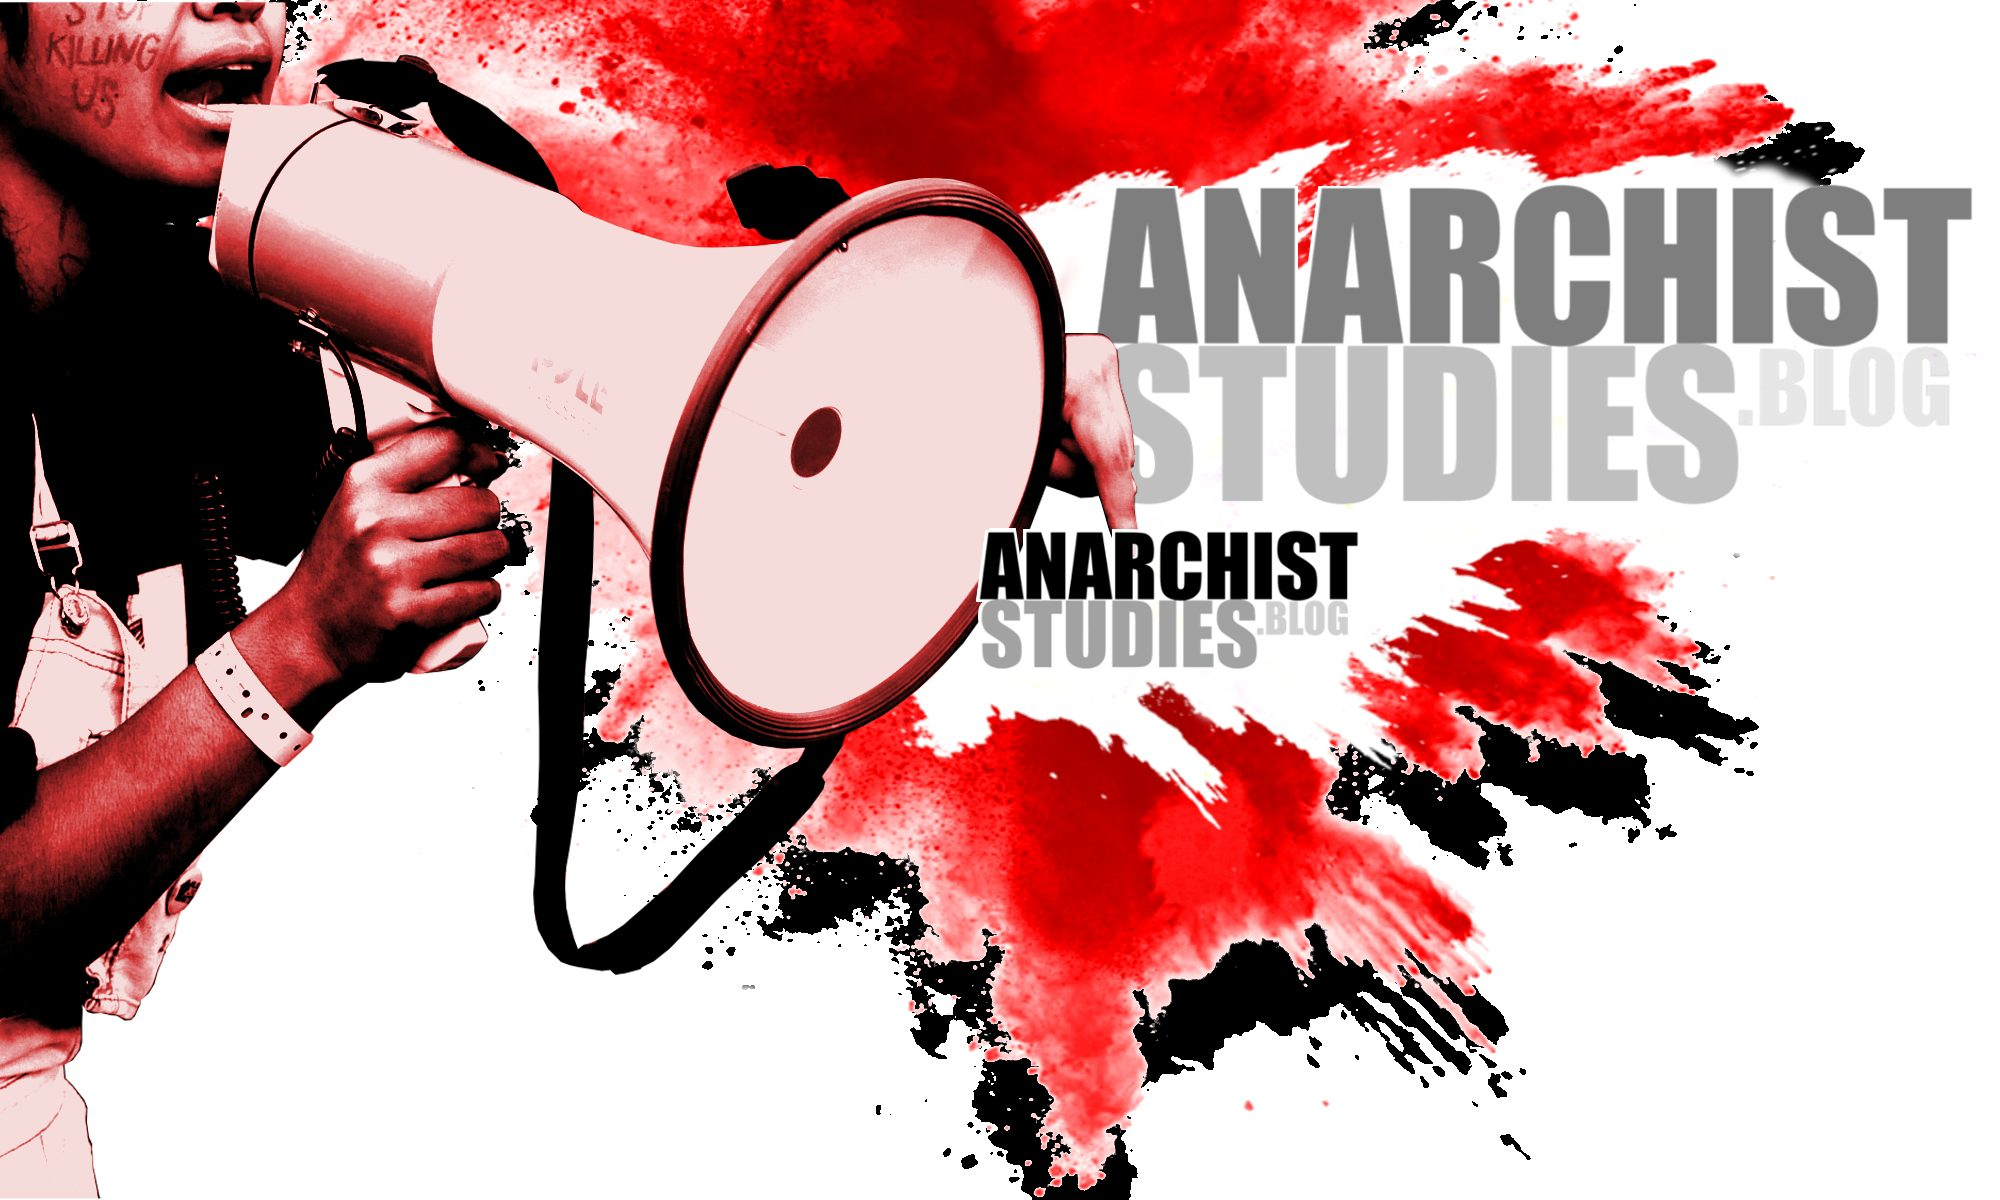 AnarchistStudies.Blog